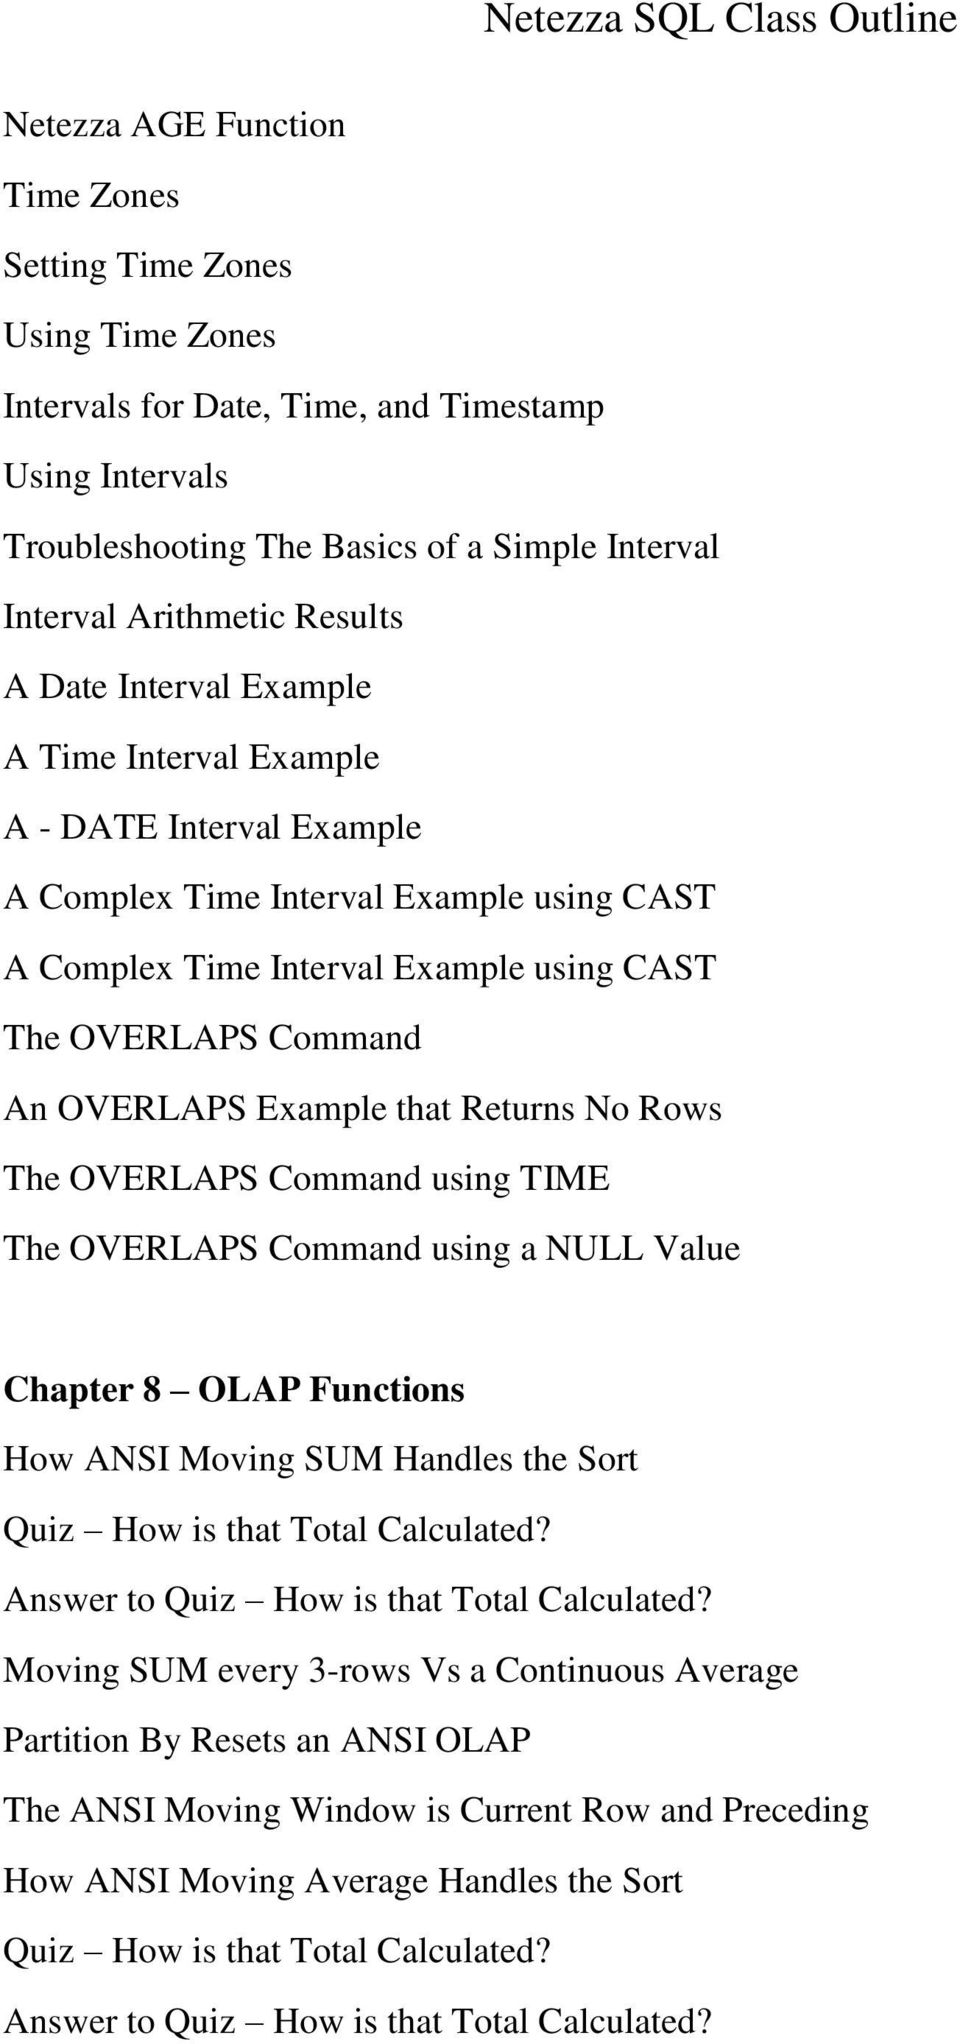 Example that Returns No Rows The OVERLAPS Command using TIME The OVERLAPS Command using a NULL Value Chapter 8 OLAP Functions How ANSI Moving SUM Handles the Sort Quiz How is that Total Calculated?